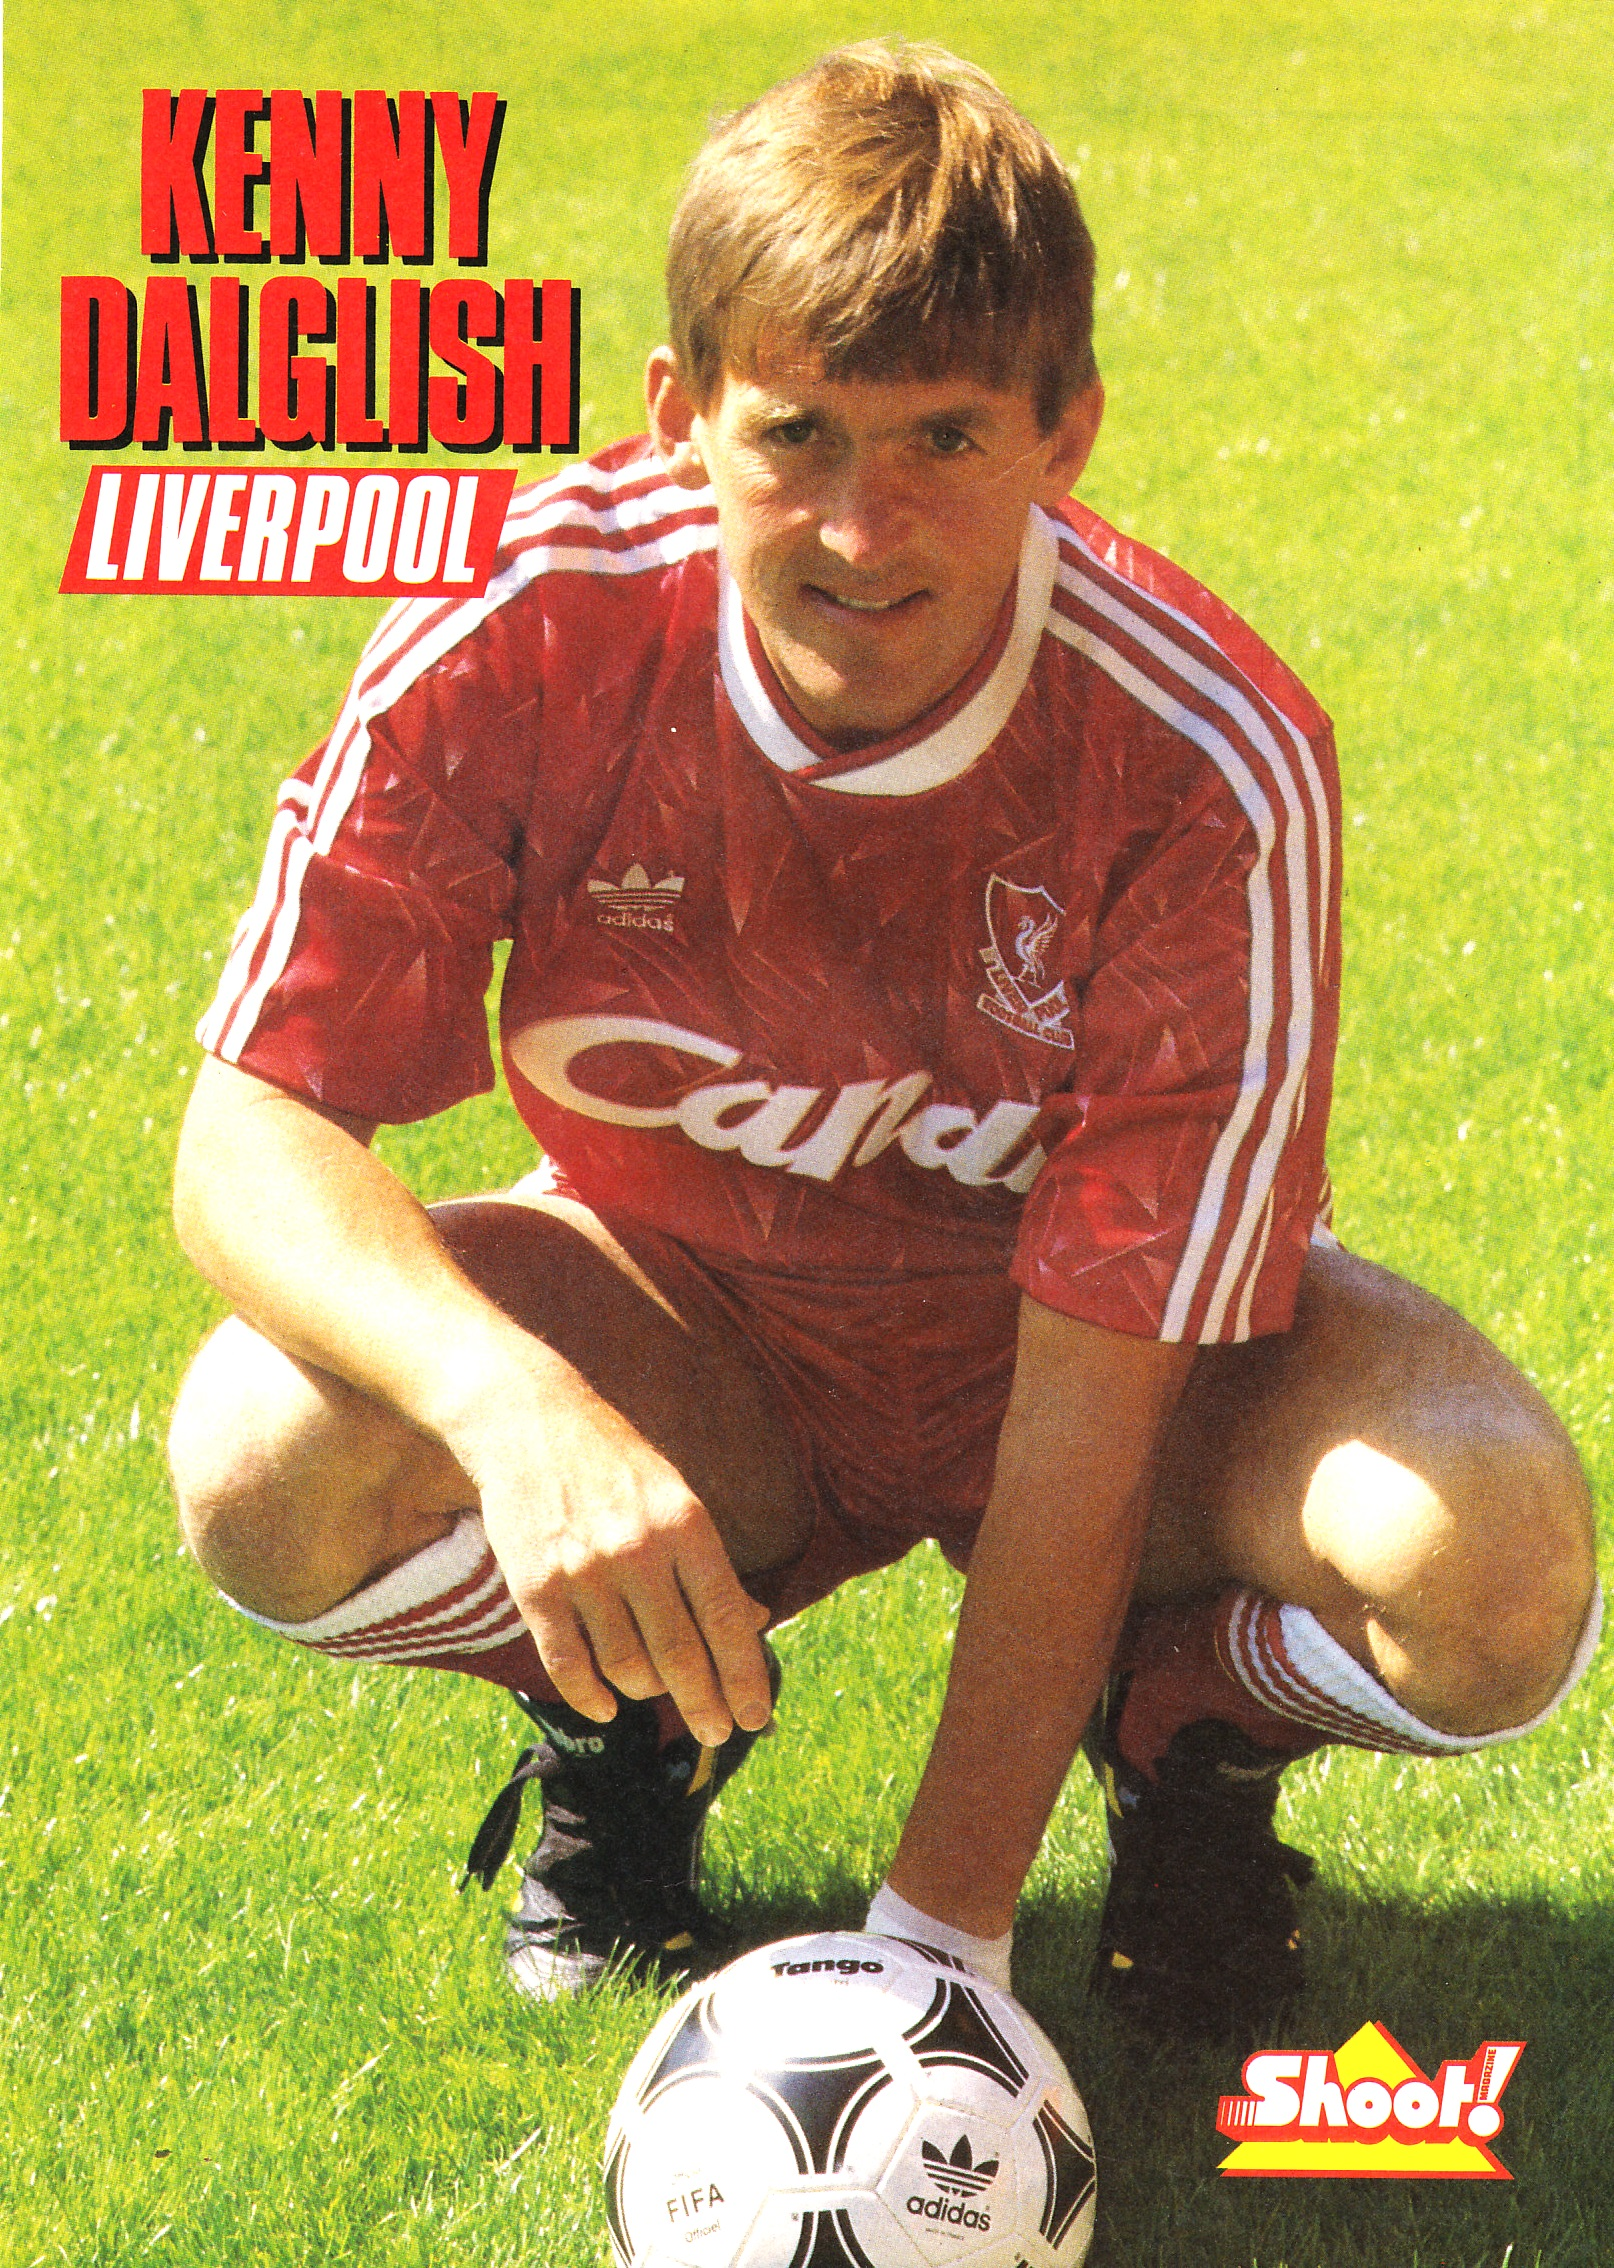 Poster of Kenny from the 1989/90 season